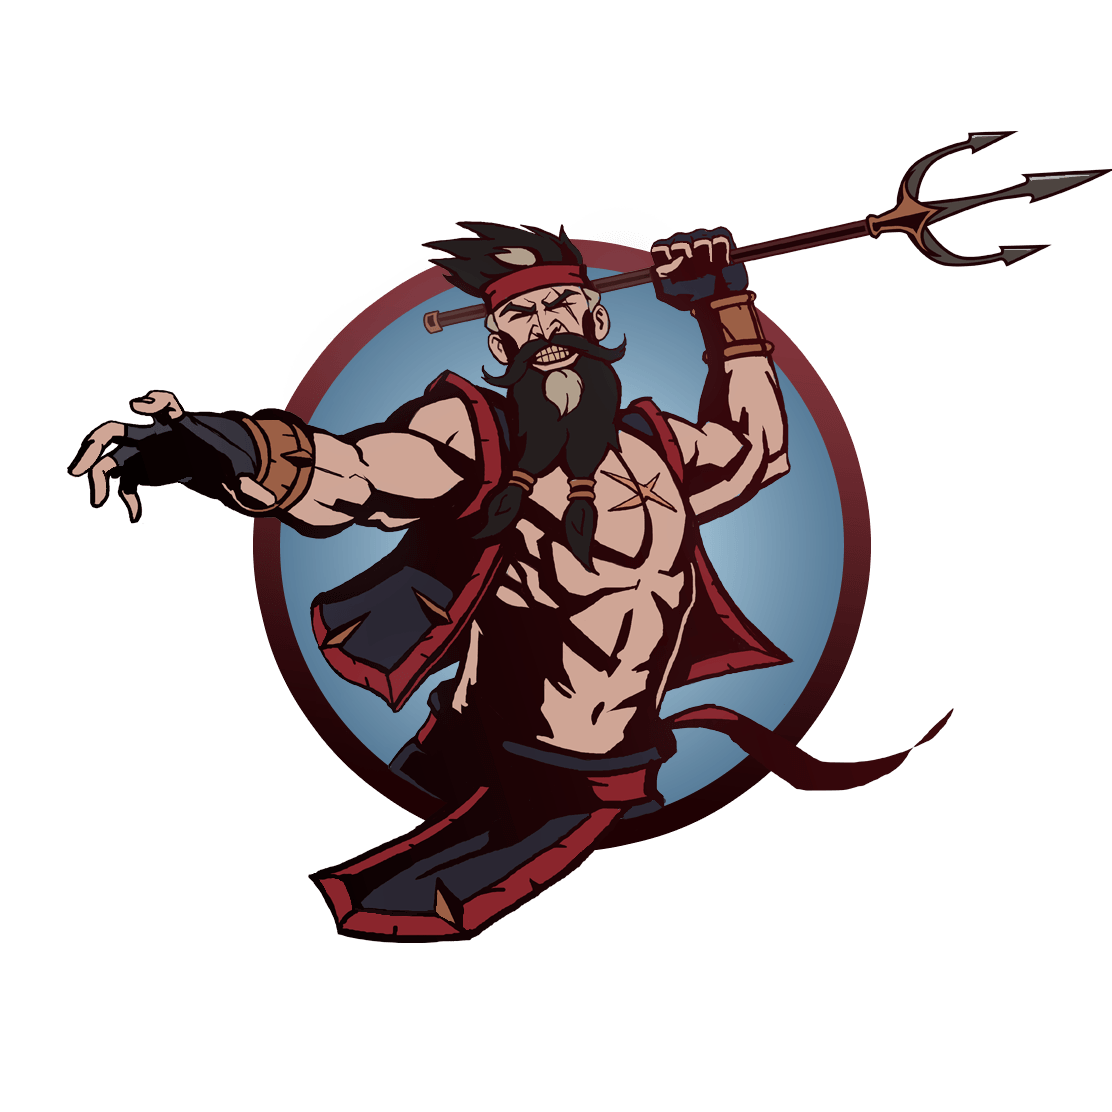 Whaler shadow fight wiki. Trident clipart weapon